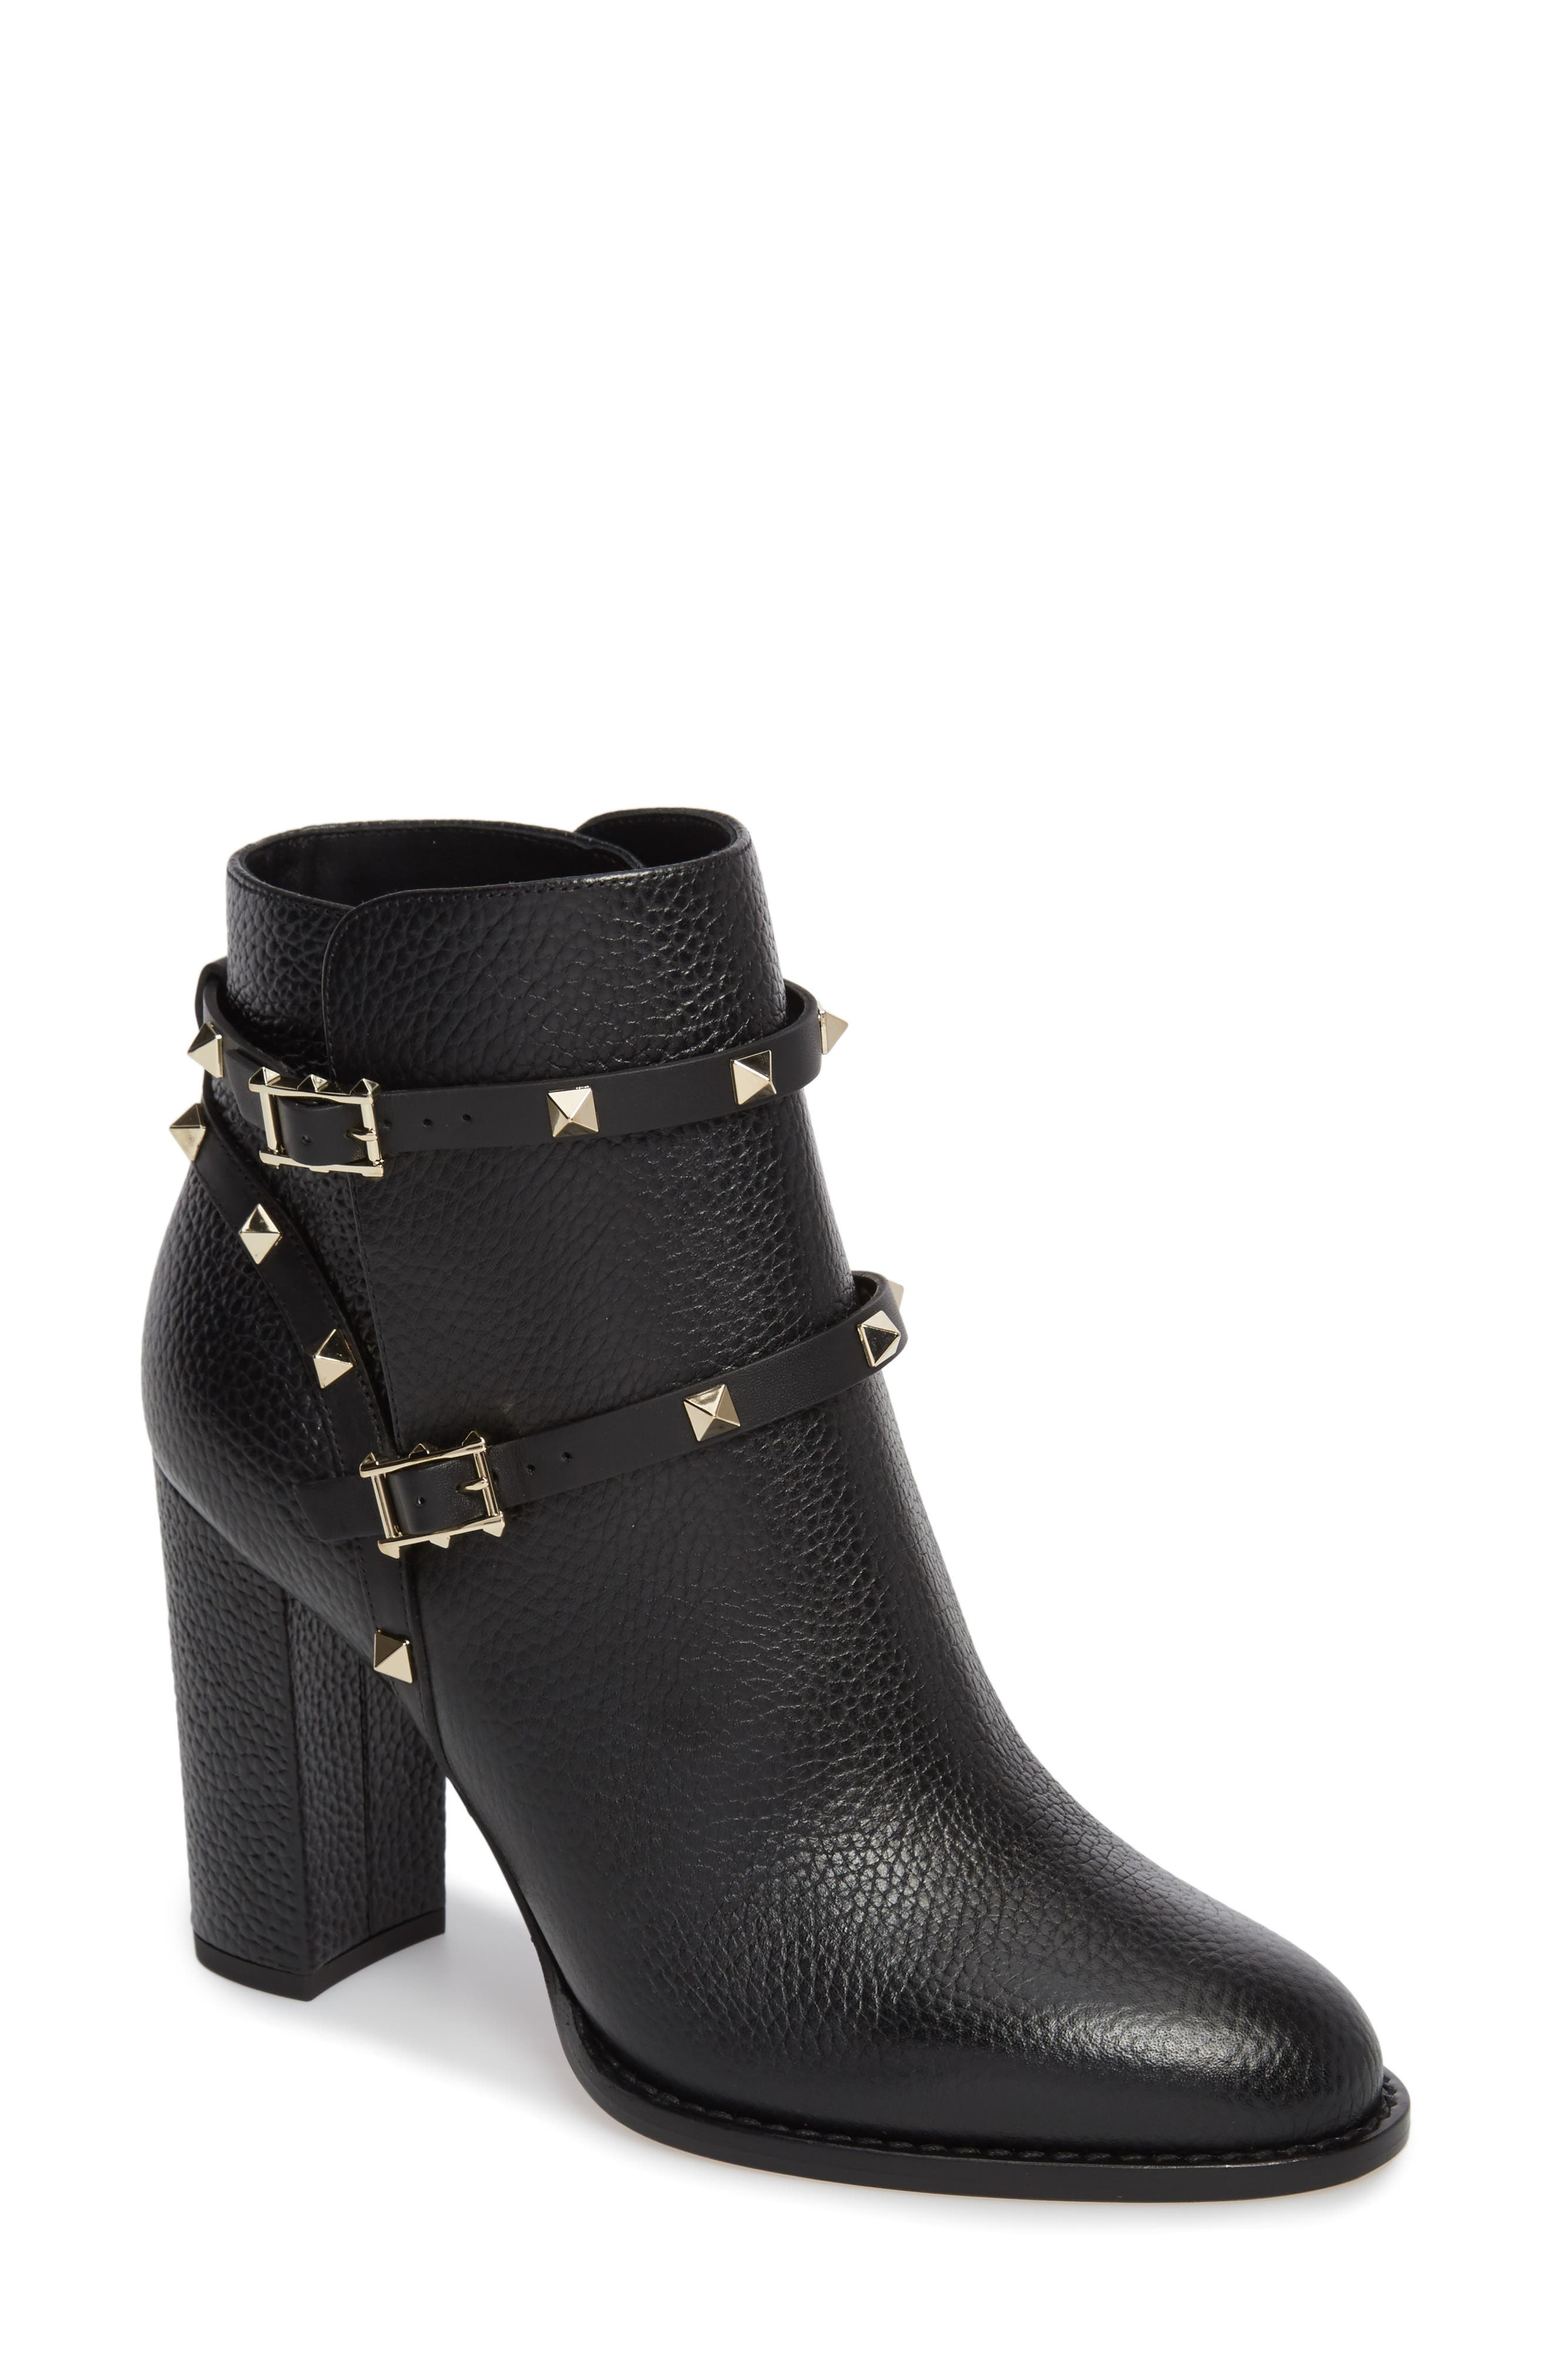 'Rockstud' Block Heel Bootie,                         Main,                         color, BLACK